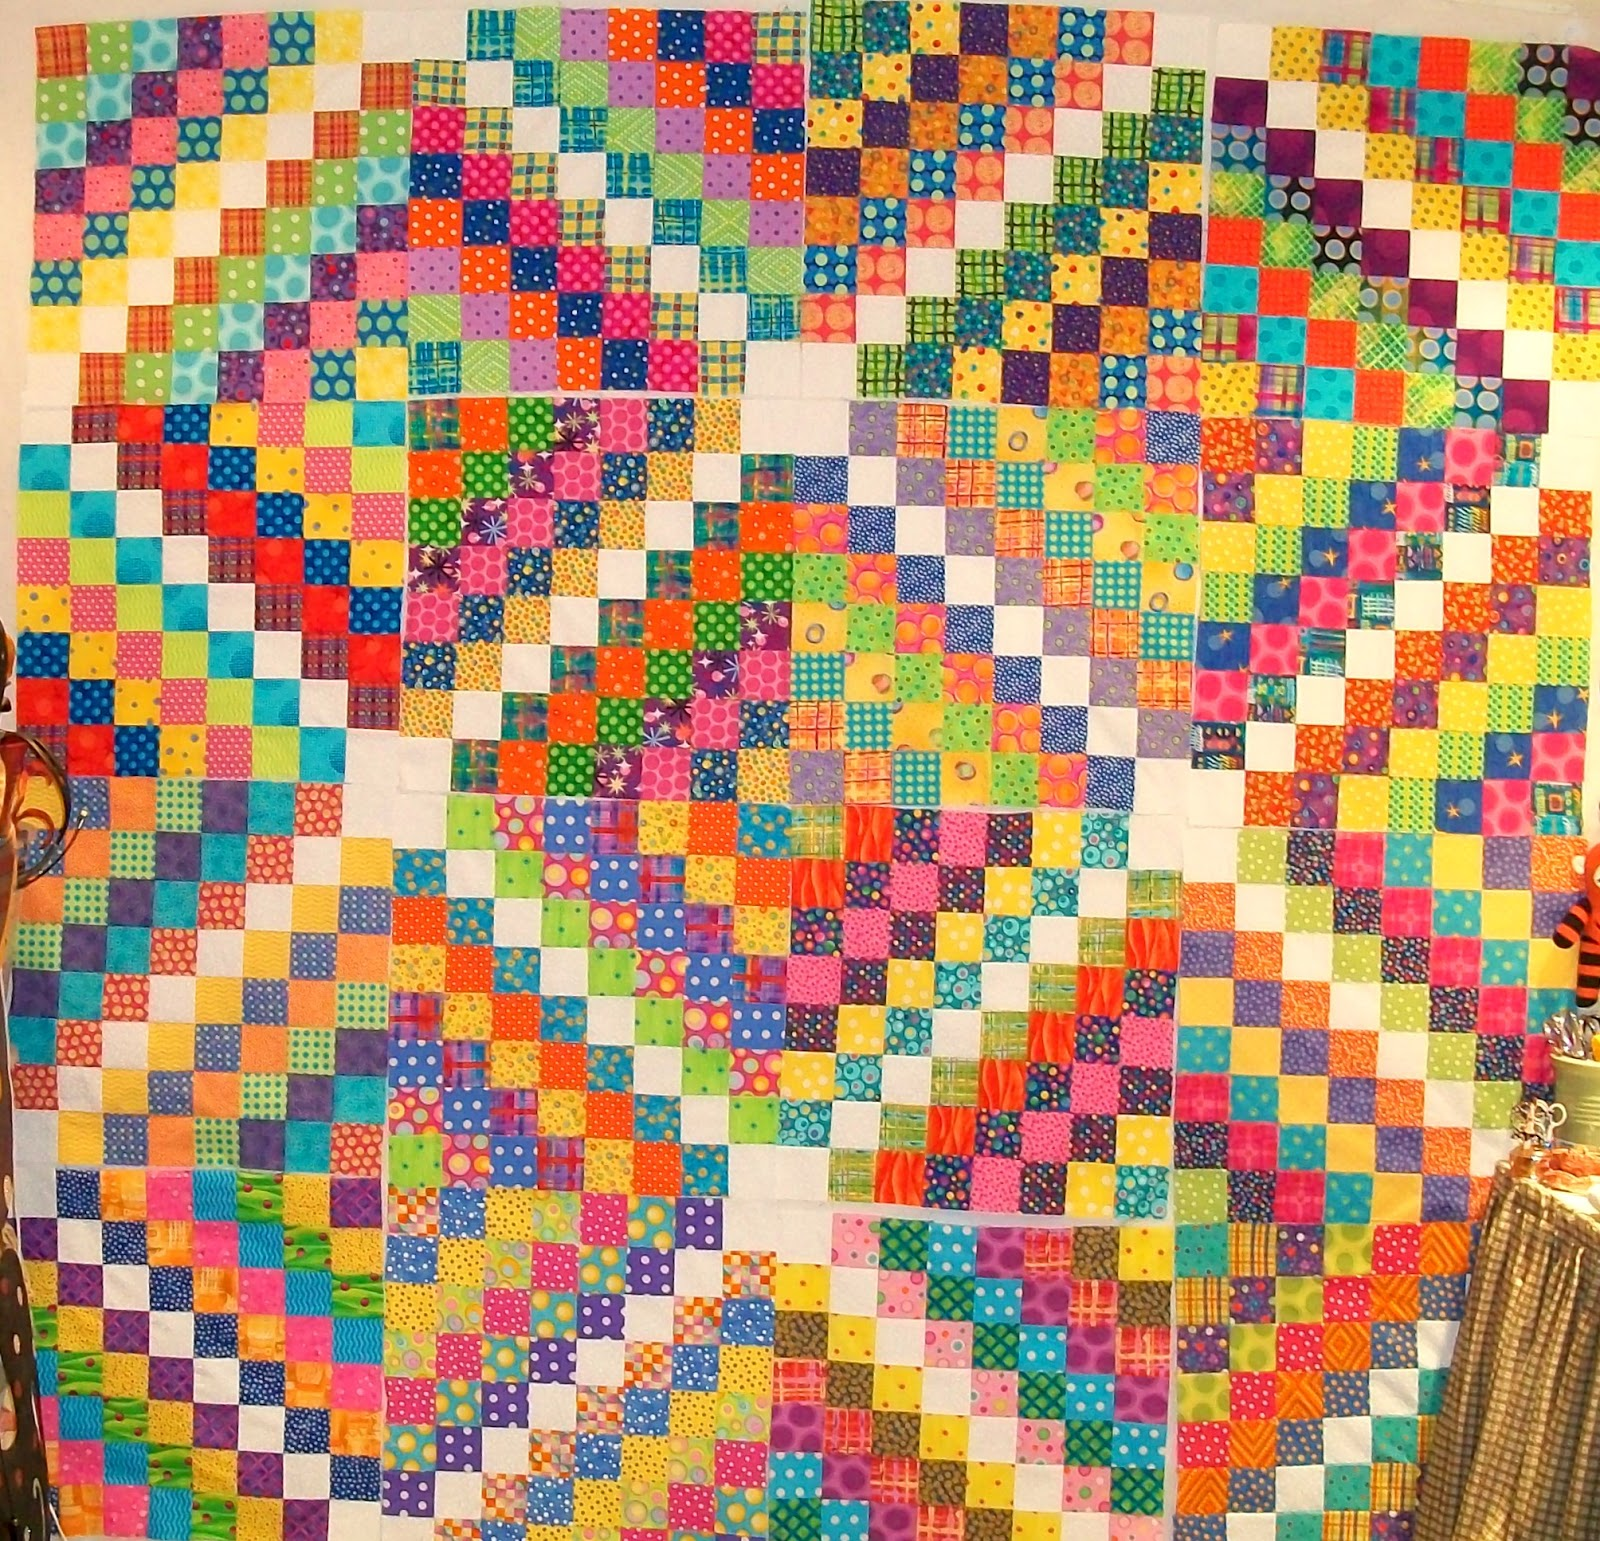 Funoldhag: Almost There - And a Quilt That has me Thinking